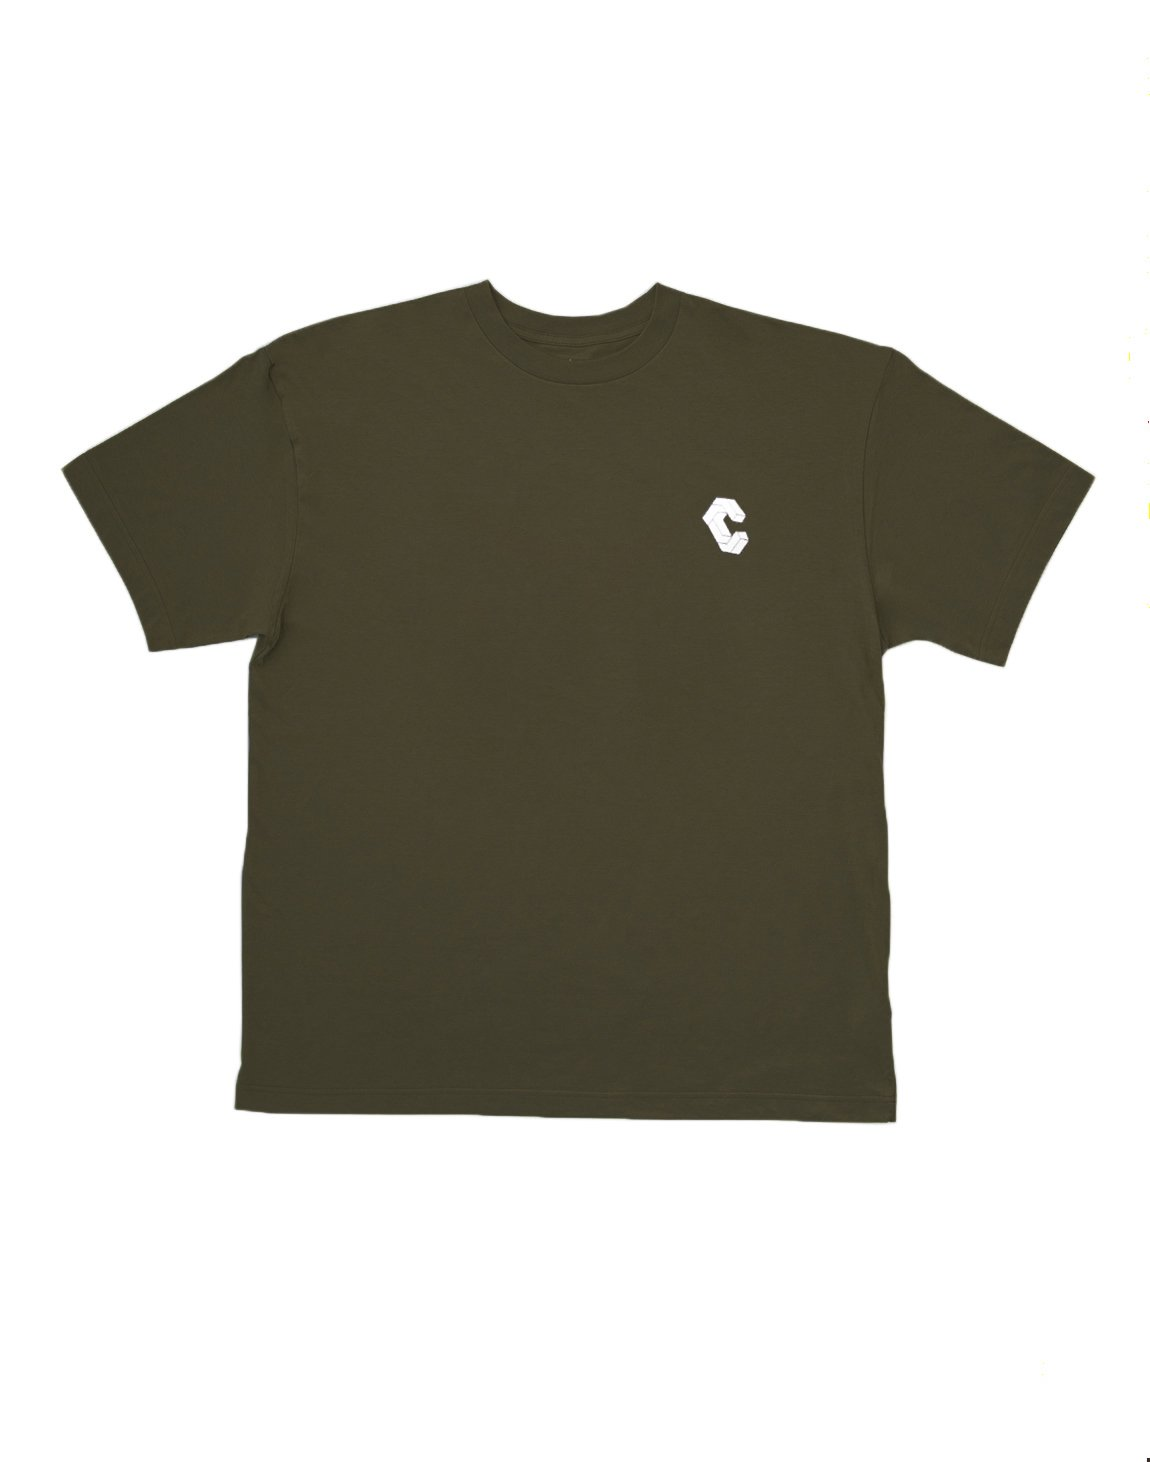 <img class='new_mark_img1' src='https://img.shop-pro.jp/img/new/icons55.gif' style='border:none;display:inline;margin:0px;padding:0px;width:auto;' />CRNS NEW BACK BIG  LOGO T-SHIRTS【OLIVE&KHAKI】